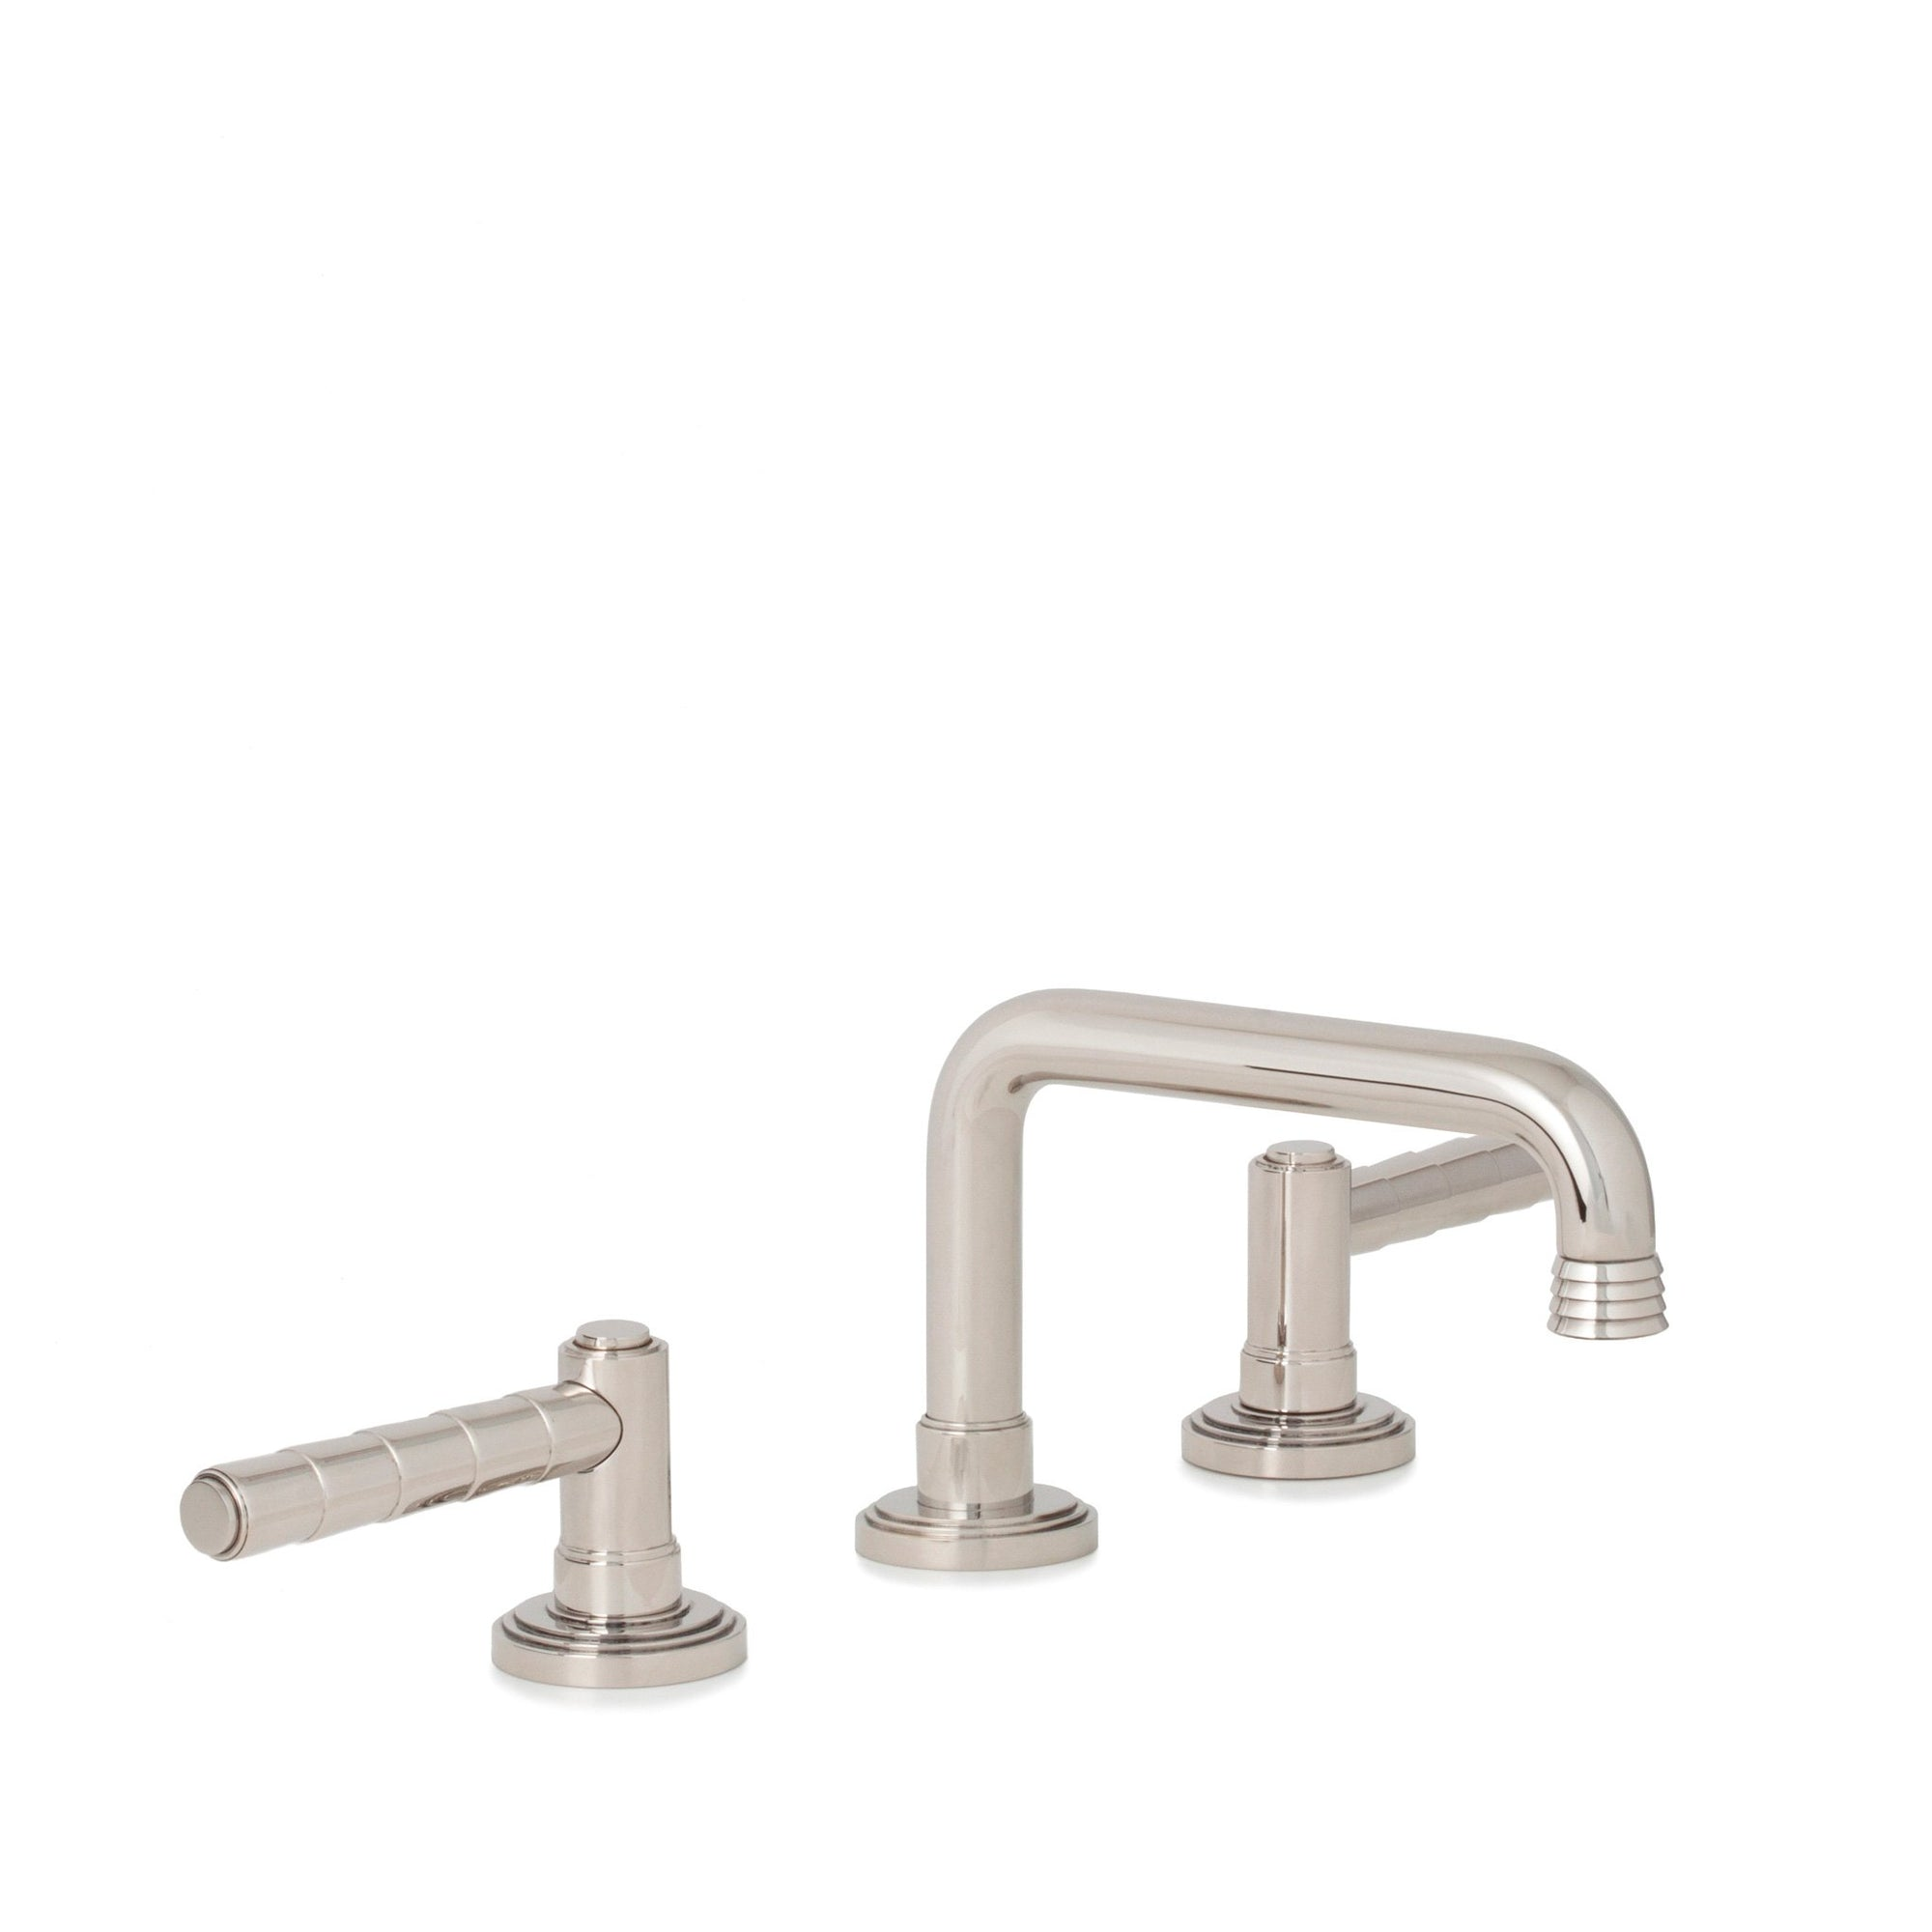 2060BSN806-HP Sherle Wagner International Keystone Lever Faucet Set in High Polished Platinum metal finish